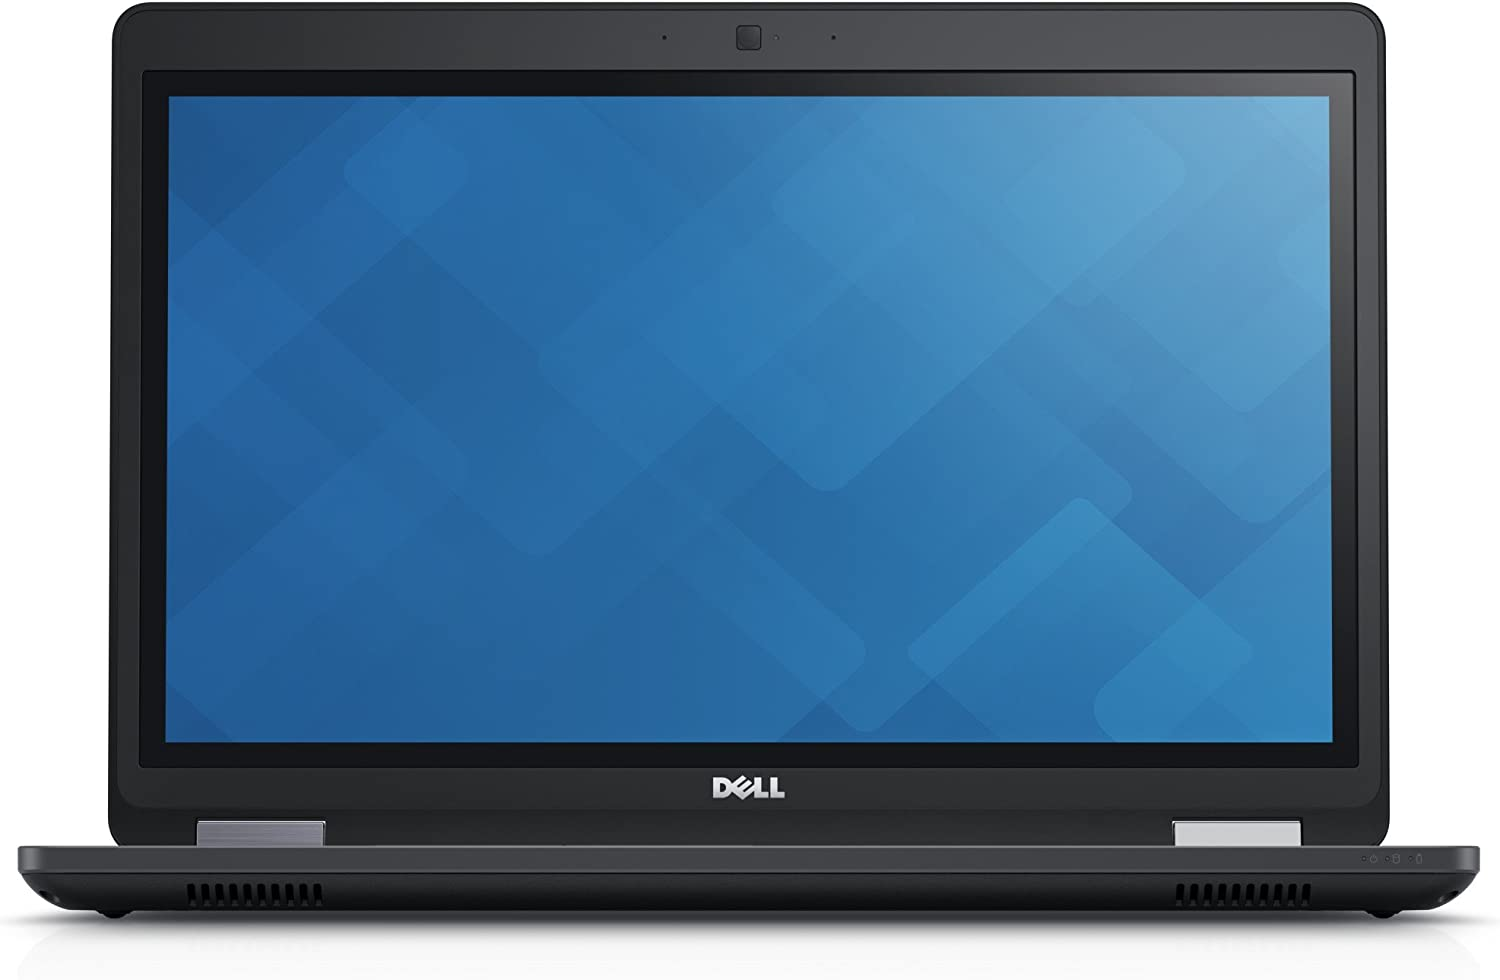 "Dell Precision M3510 15.6"" 1080P FHD Workstation Intel Core i7-6700HQ 16GB RAM 512GB SSD Windows 10 Professional (Renewed)"